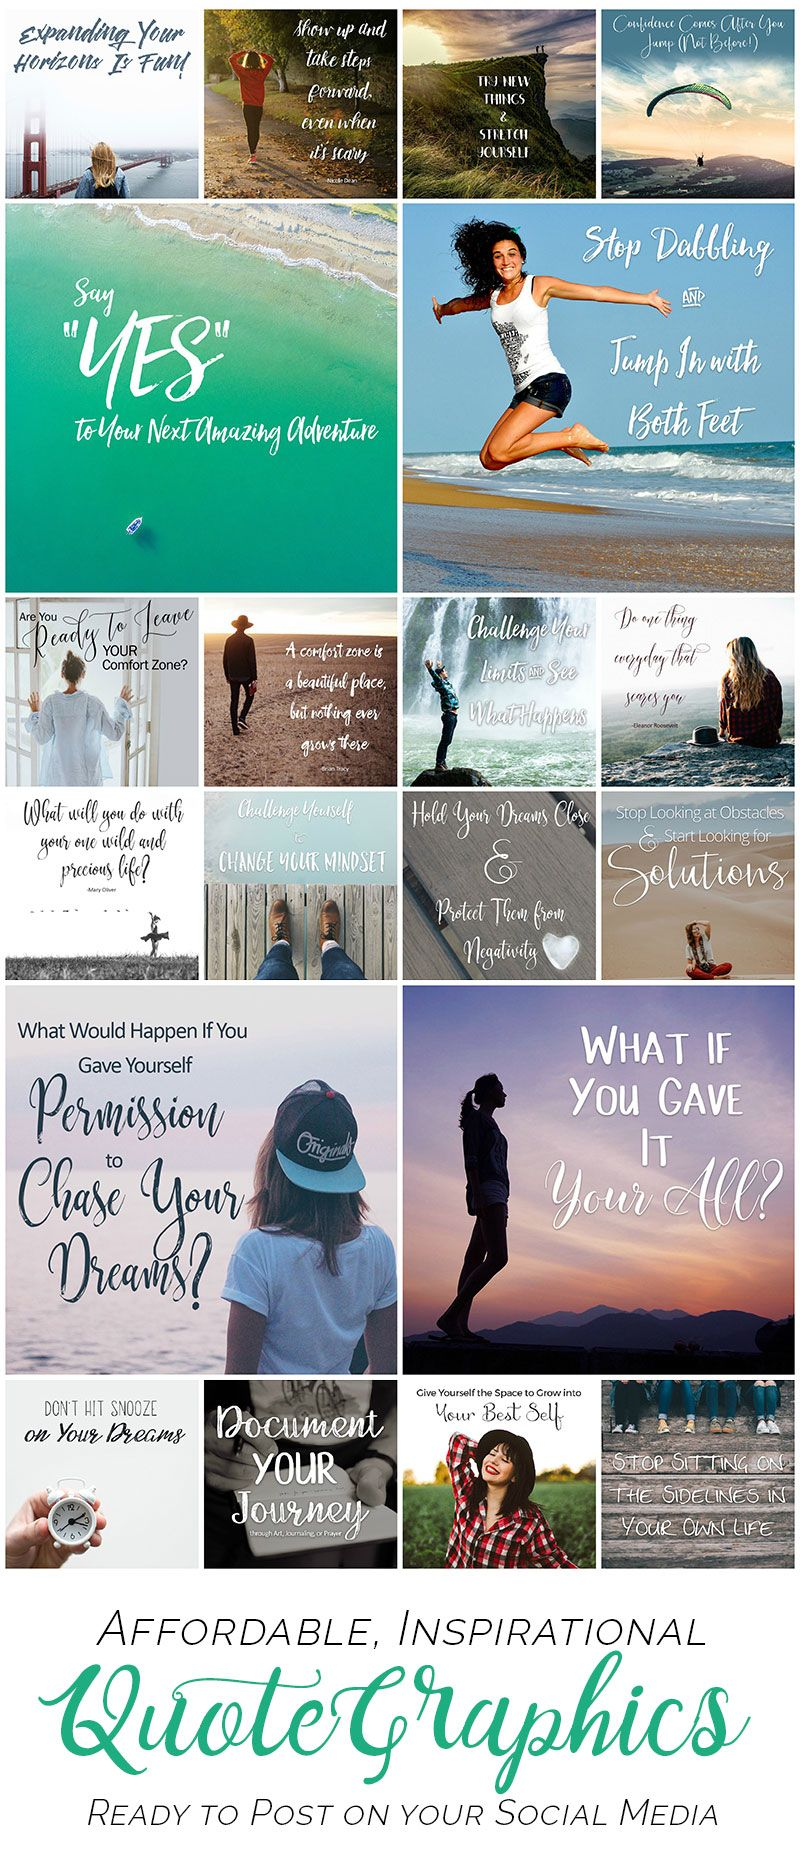 Social media quotes for marketing your small business: Connect with your prospects daily using shareable graphics that save you time! 20 gorgeous images in choice of themes. Watermark them or use as-is. Shown: DREAMS theme. Click to website to see them all!